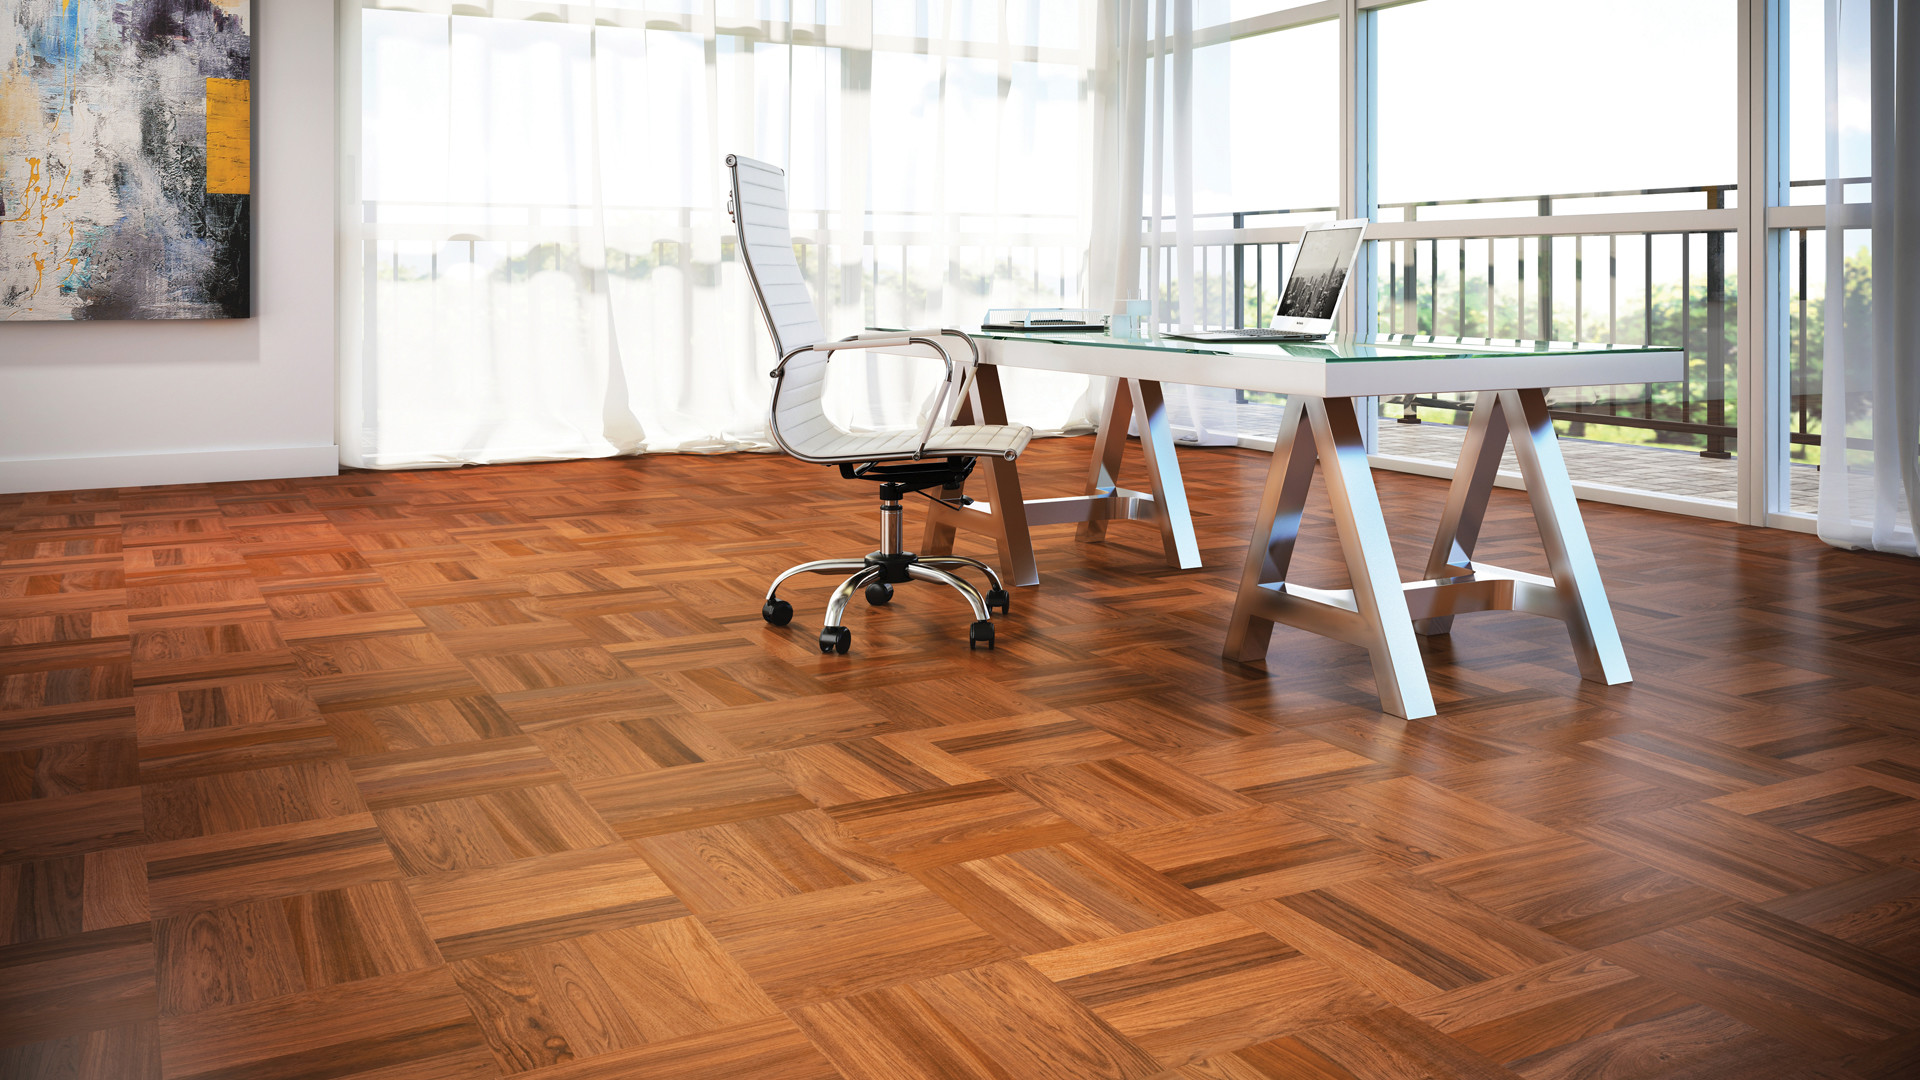 extra wide plank hardwood flooring of 4 latest hardwood flooring trends of 2018 lauzon flooring pertaining to floors made out of our domestic species hard maple red oak and yellow birch from our ambiance collection are now offered in wider and longer